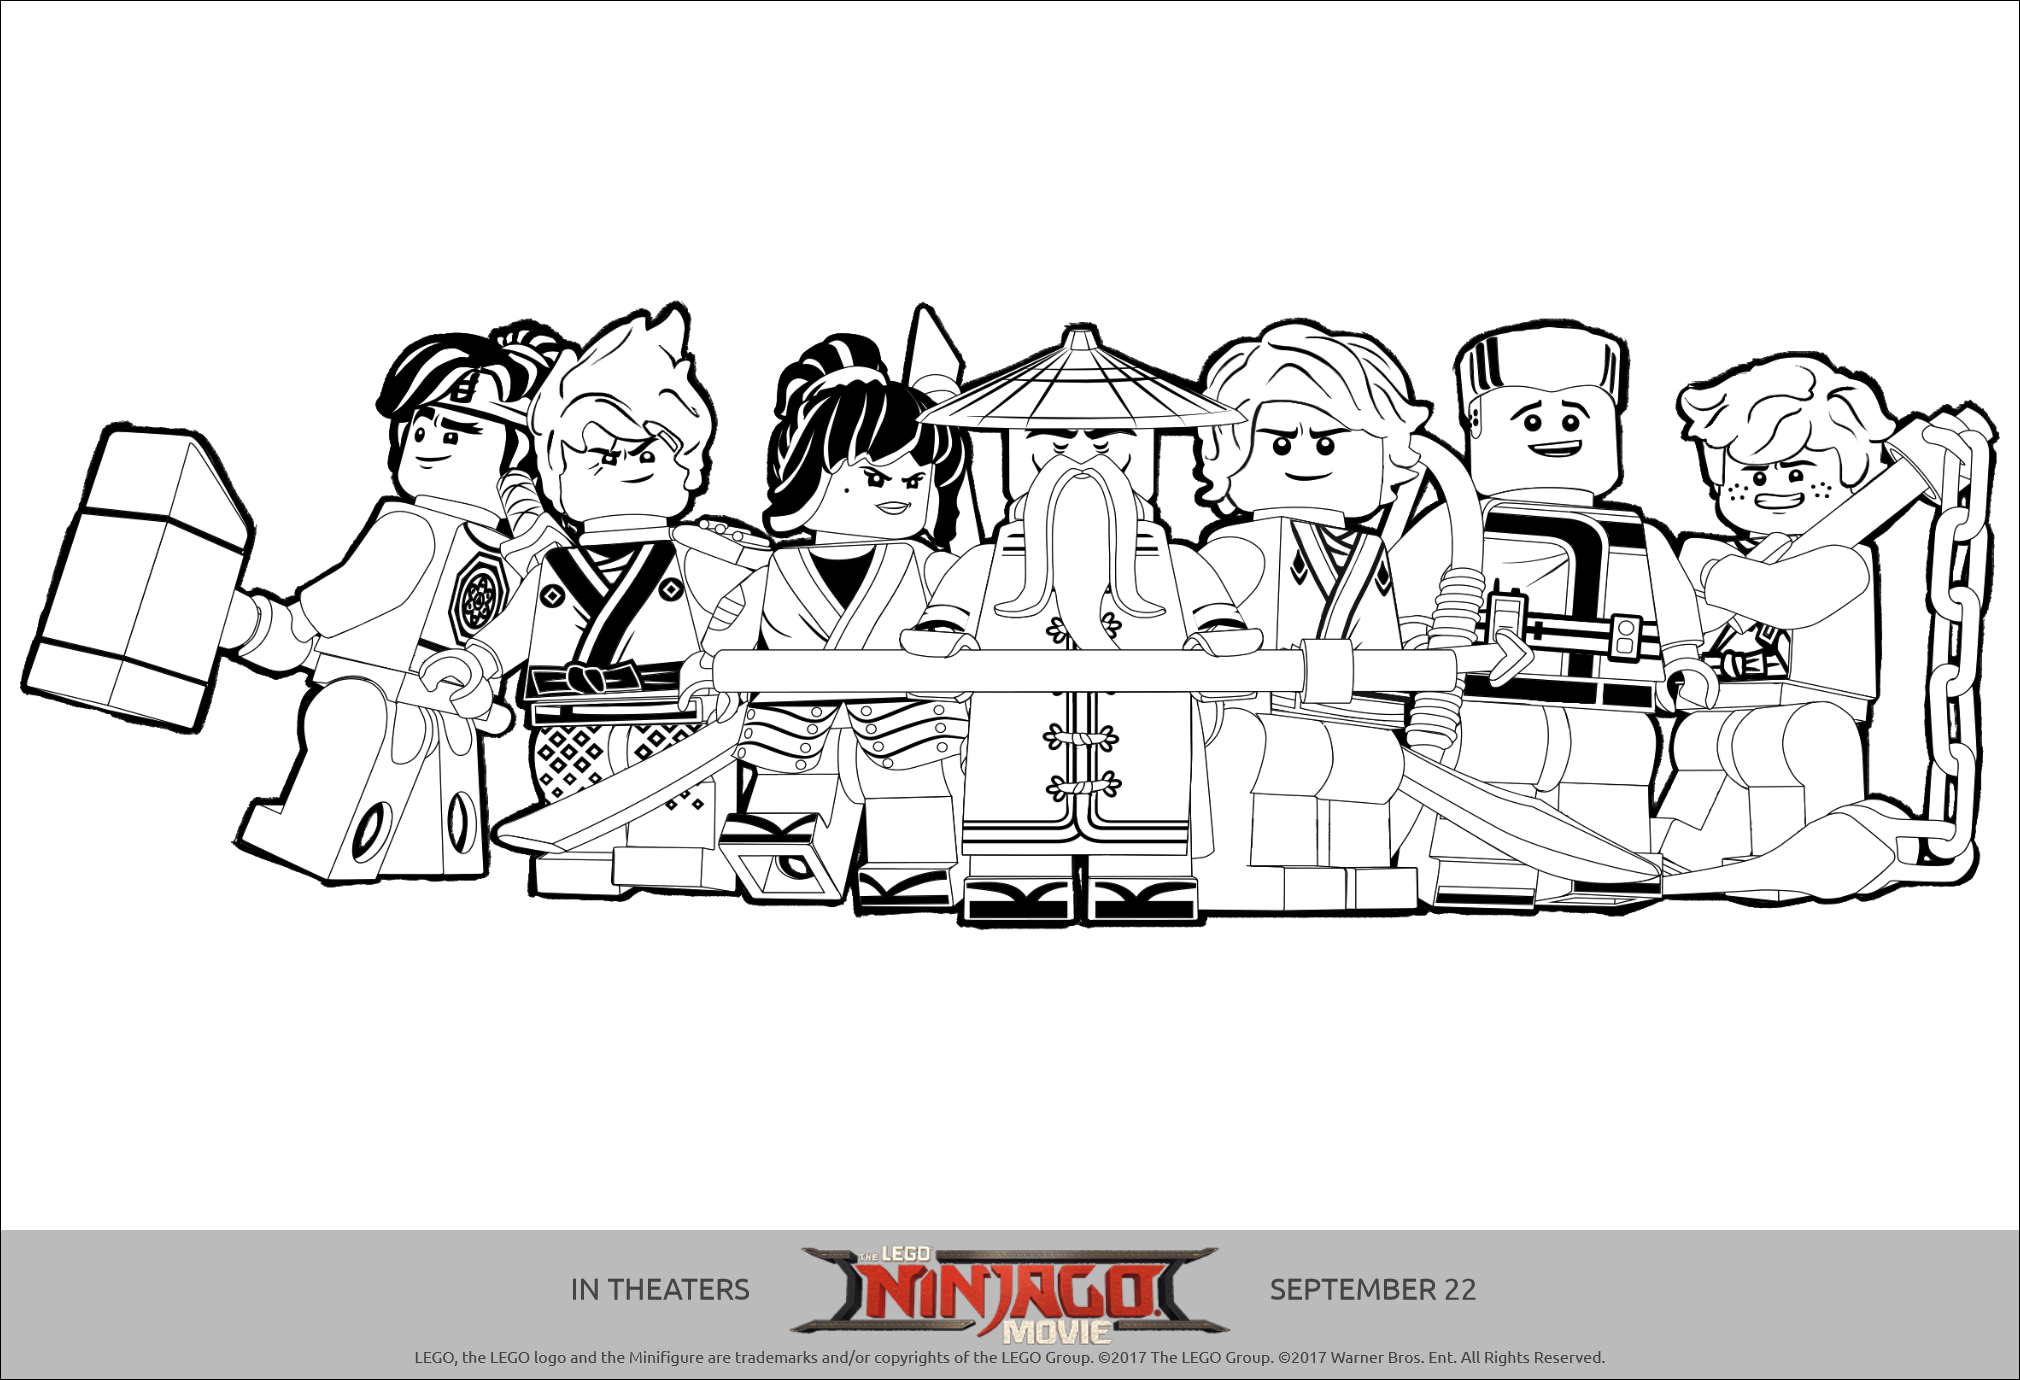 lego ninjago printables coloring pages and activity sheets - Lego Movie Coloring Page